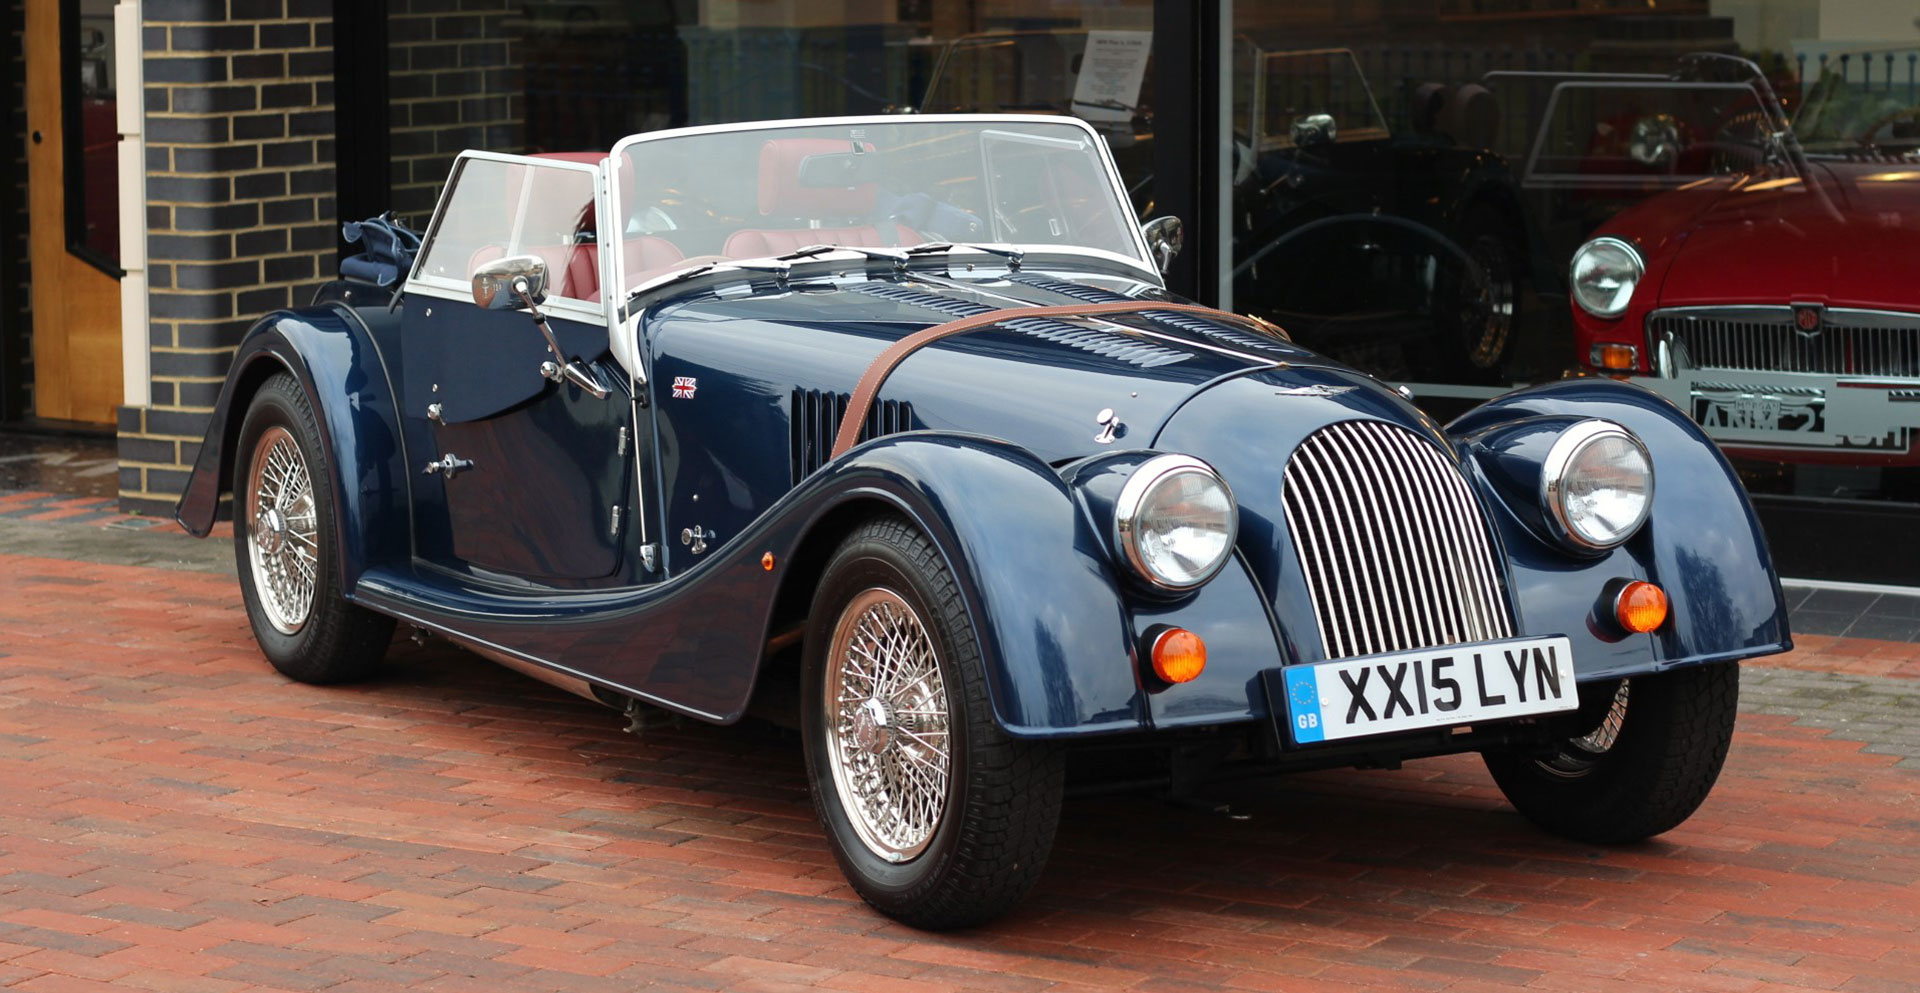 morgan cars for sale from melvyn rutter ltd morgan main